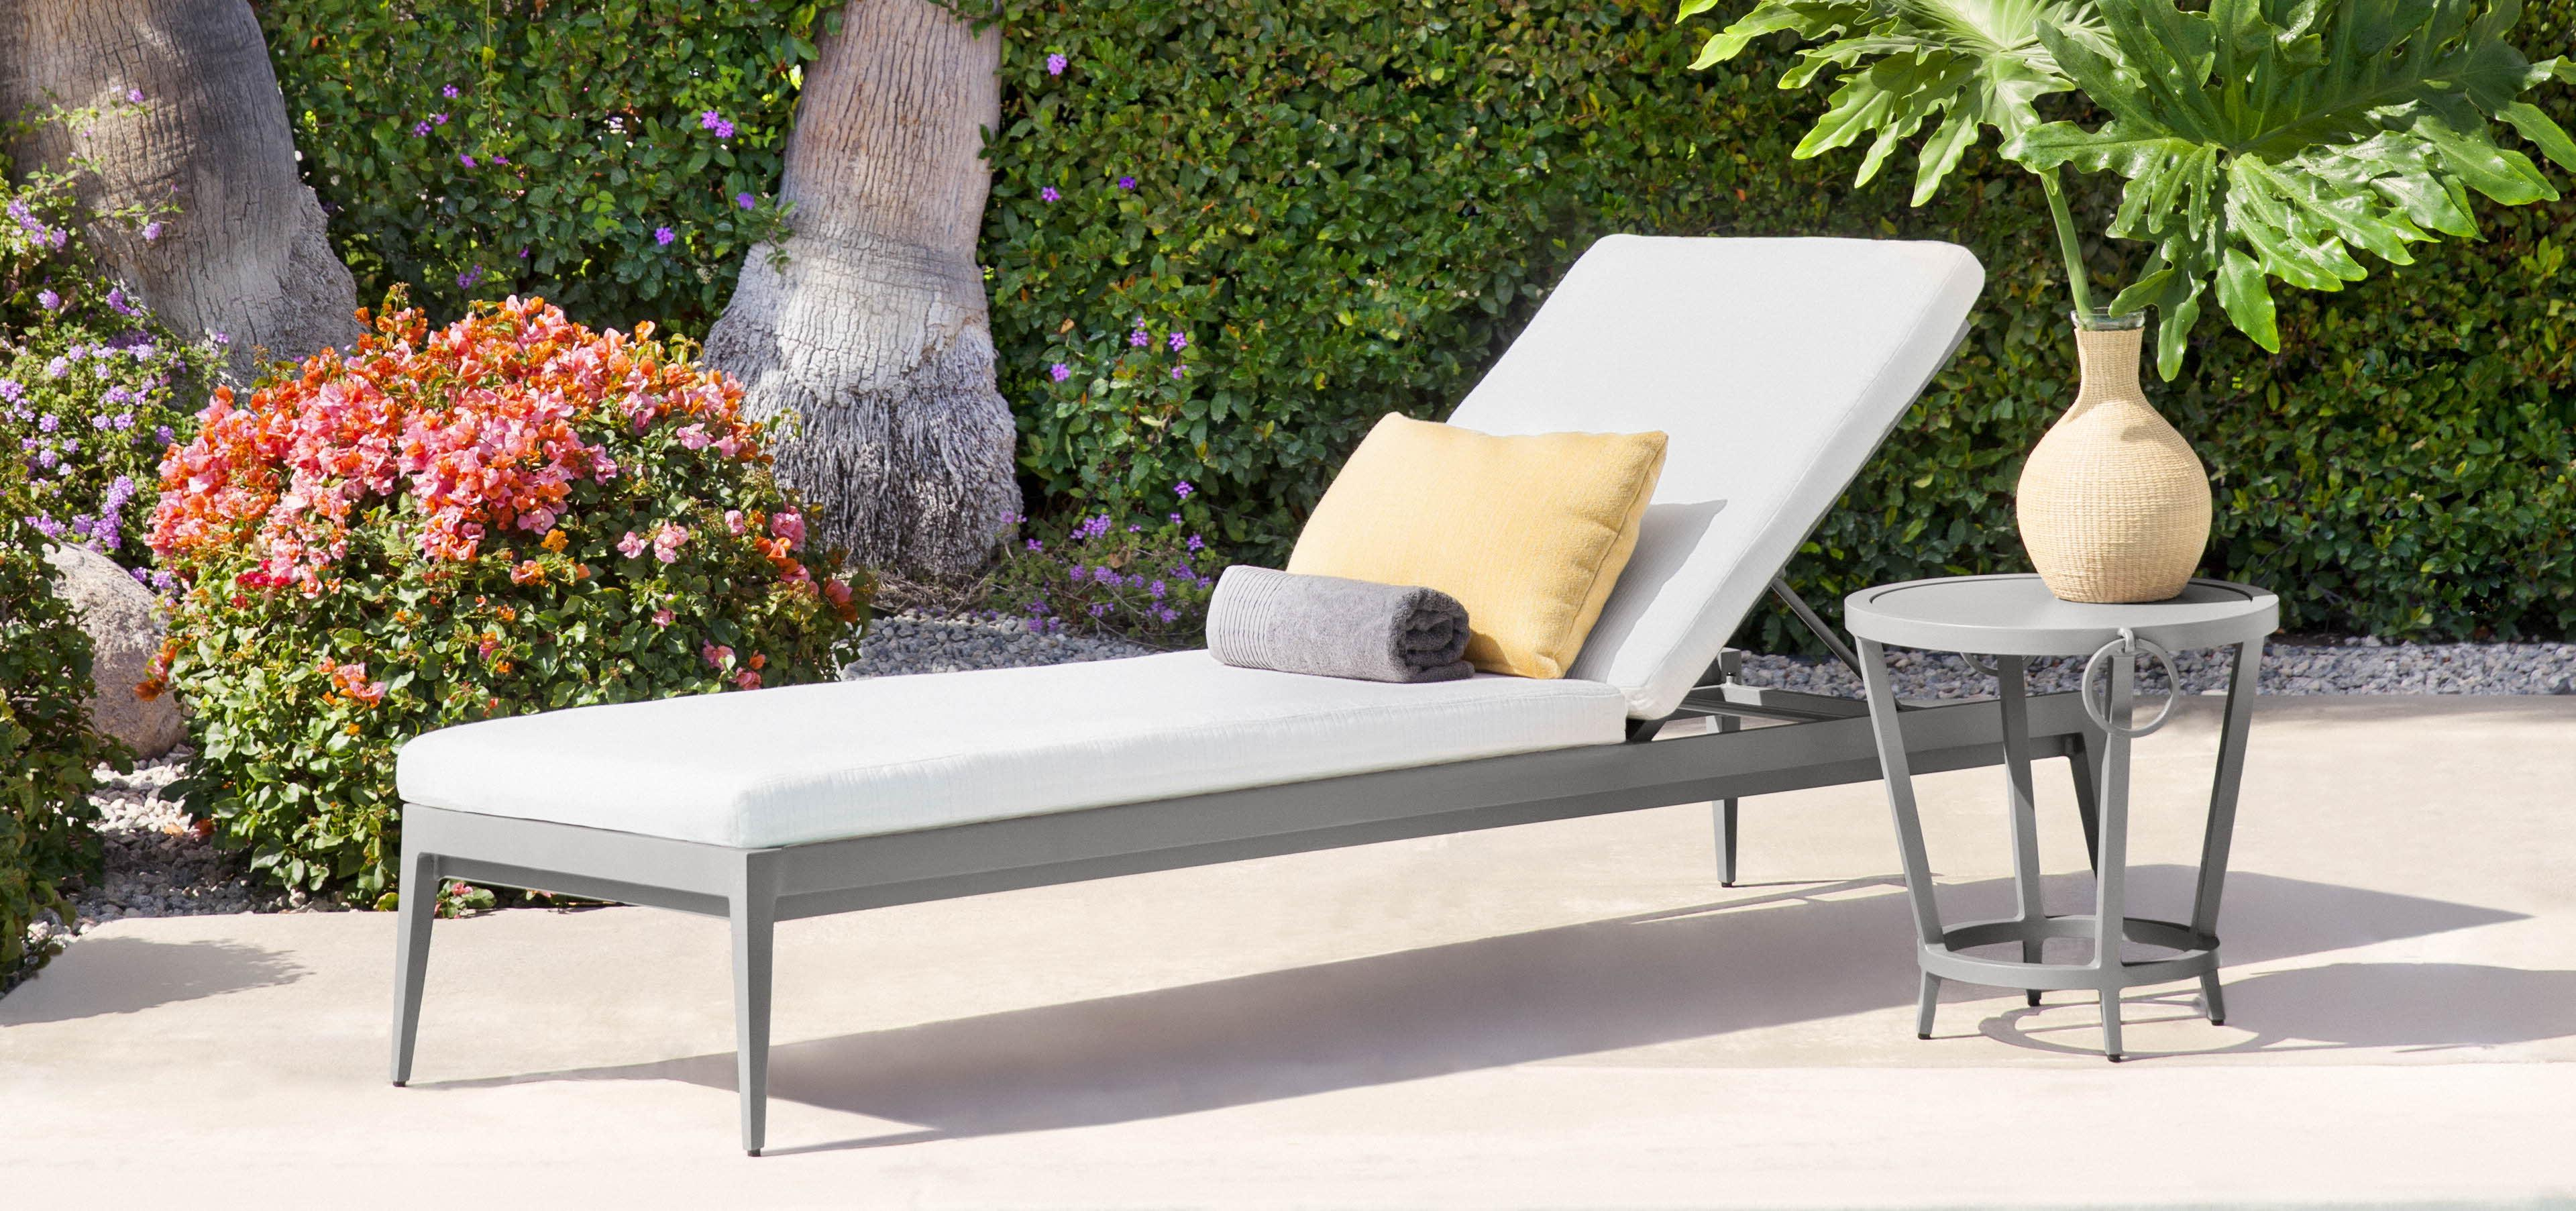 Residential & Commercial Outdoor Regarding Best And Newest Outdoor Cart Wheel Adjustable Chaise Lounge Chairs (View 16 of 25)